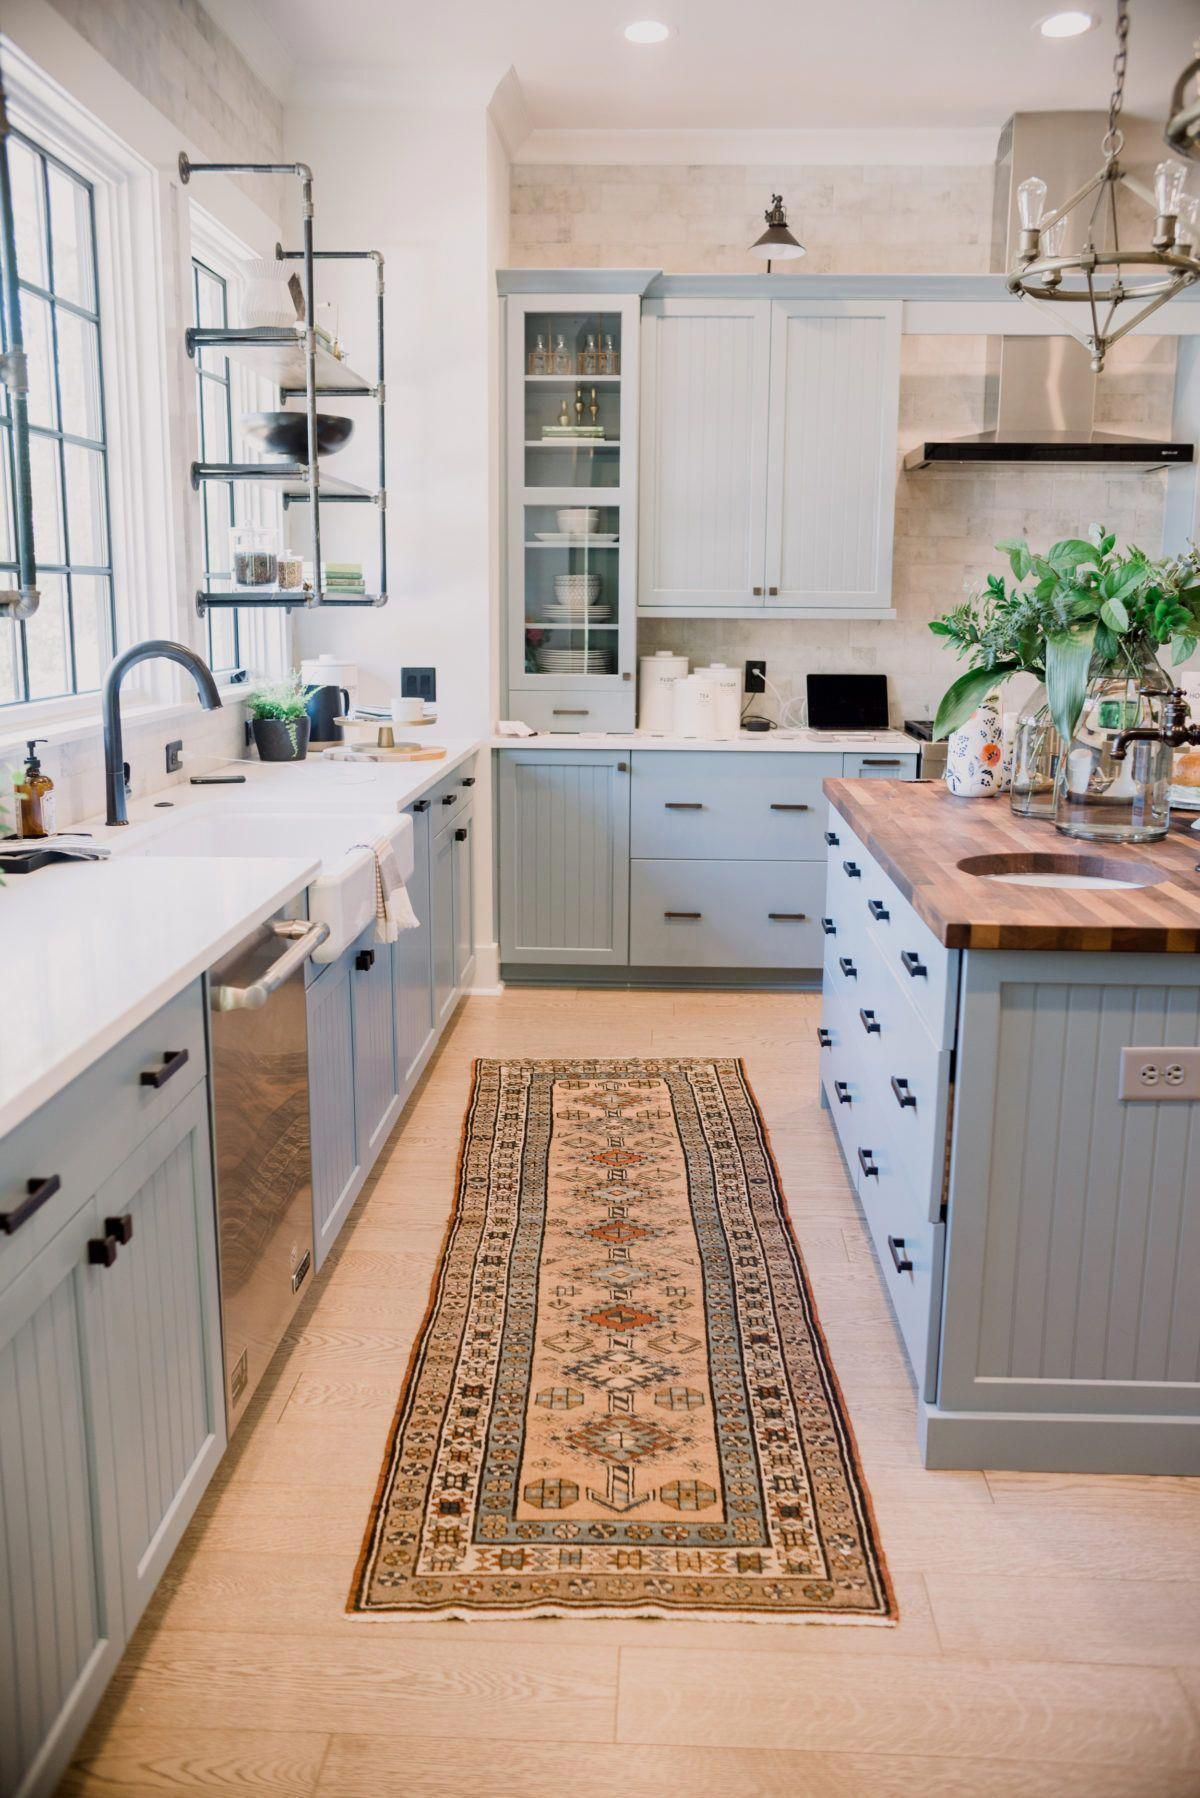 Rustic Eclectic Kitchen Eclectic Kitchen Home Decor Kitchen